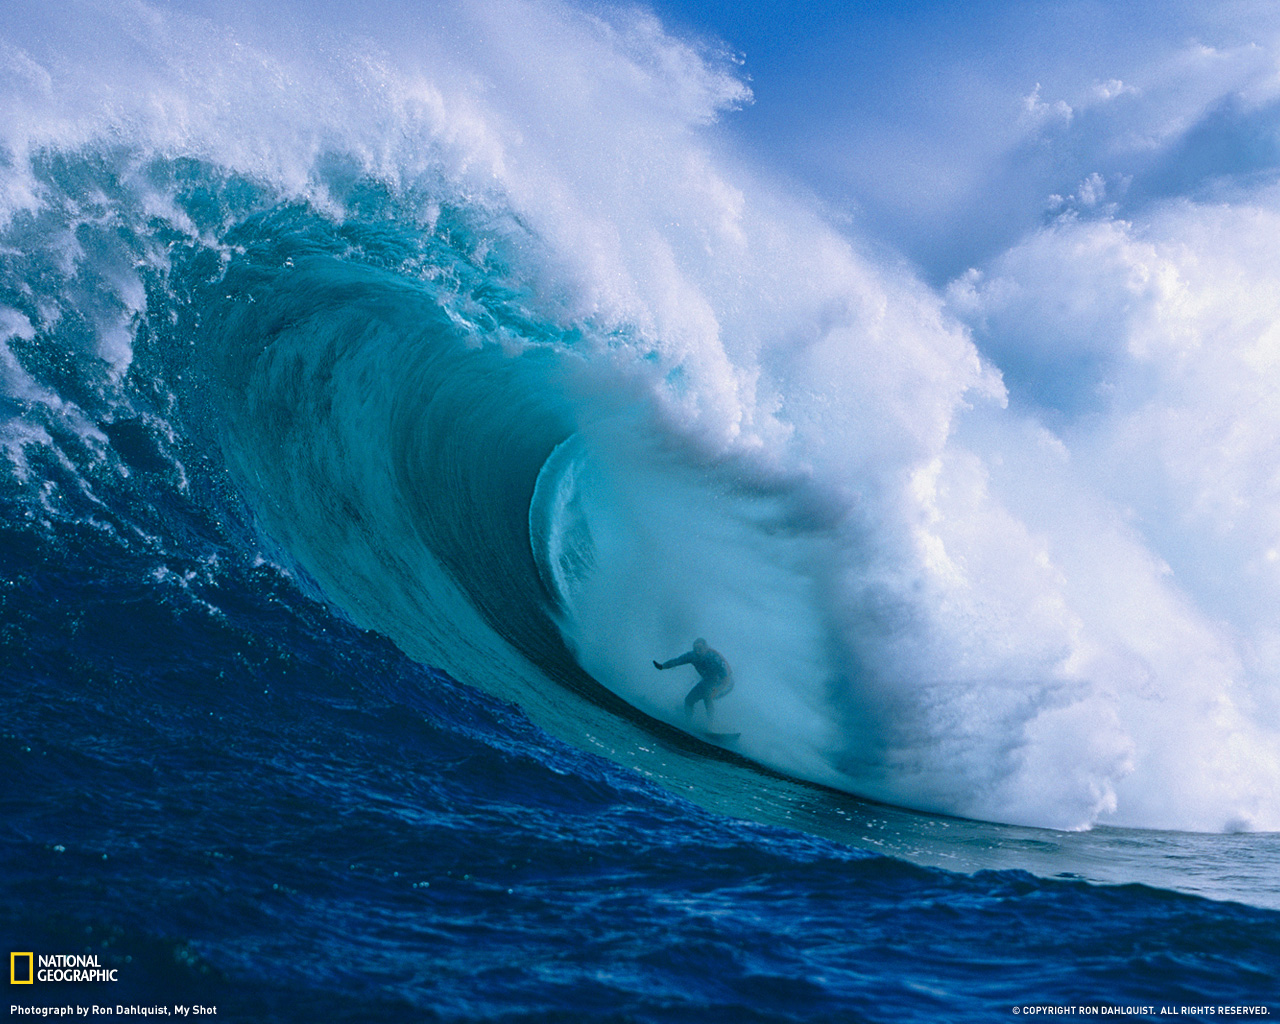 Surfer Photo Maui Wallpaper National Geographic Photo of the Day 1280x1024